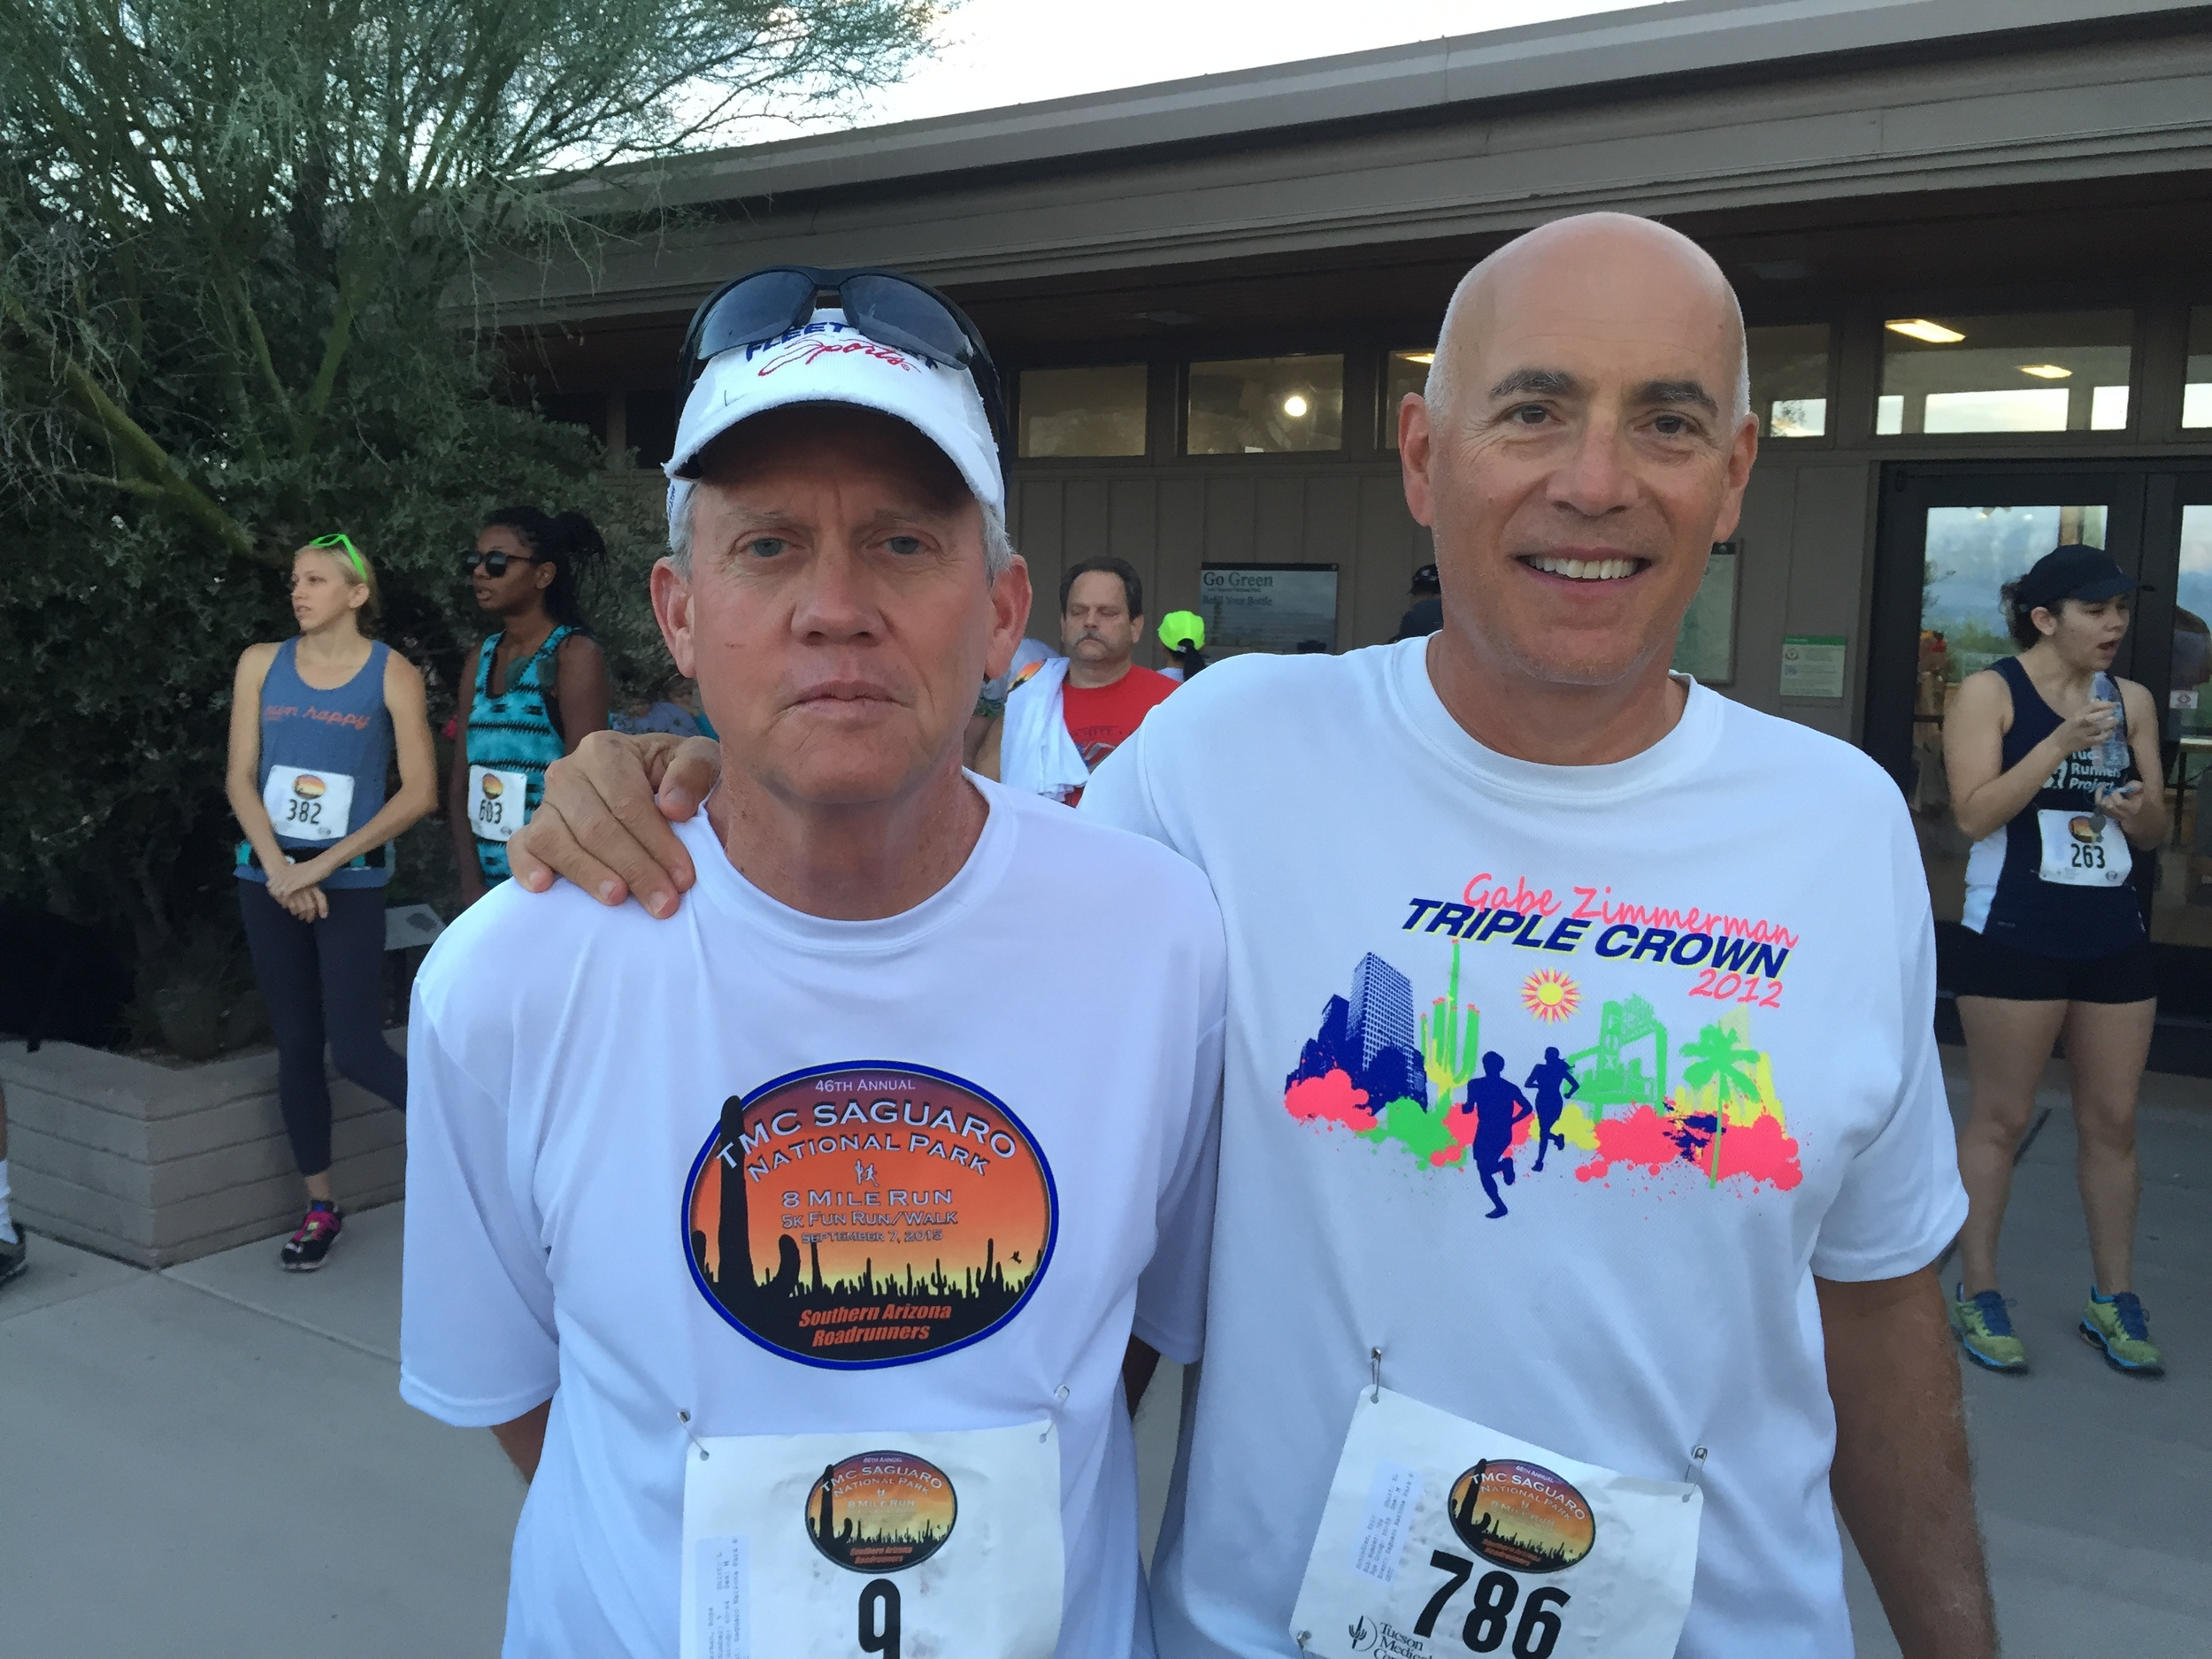 Board member Ross Zimmerman and CEO & President Eric Schindler before the Saguaro National Park Labor Day race